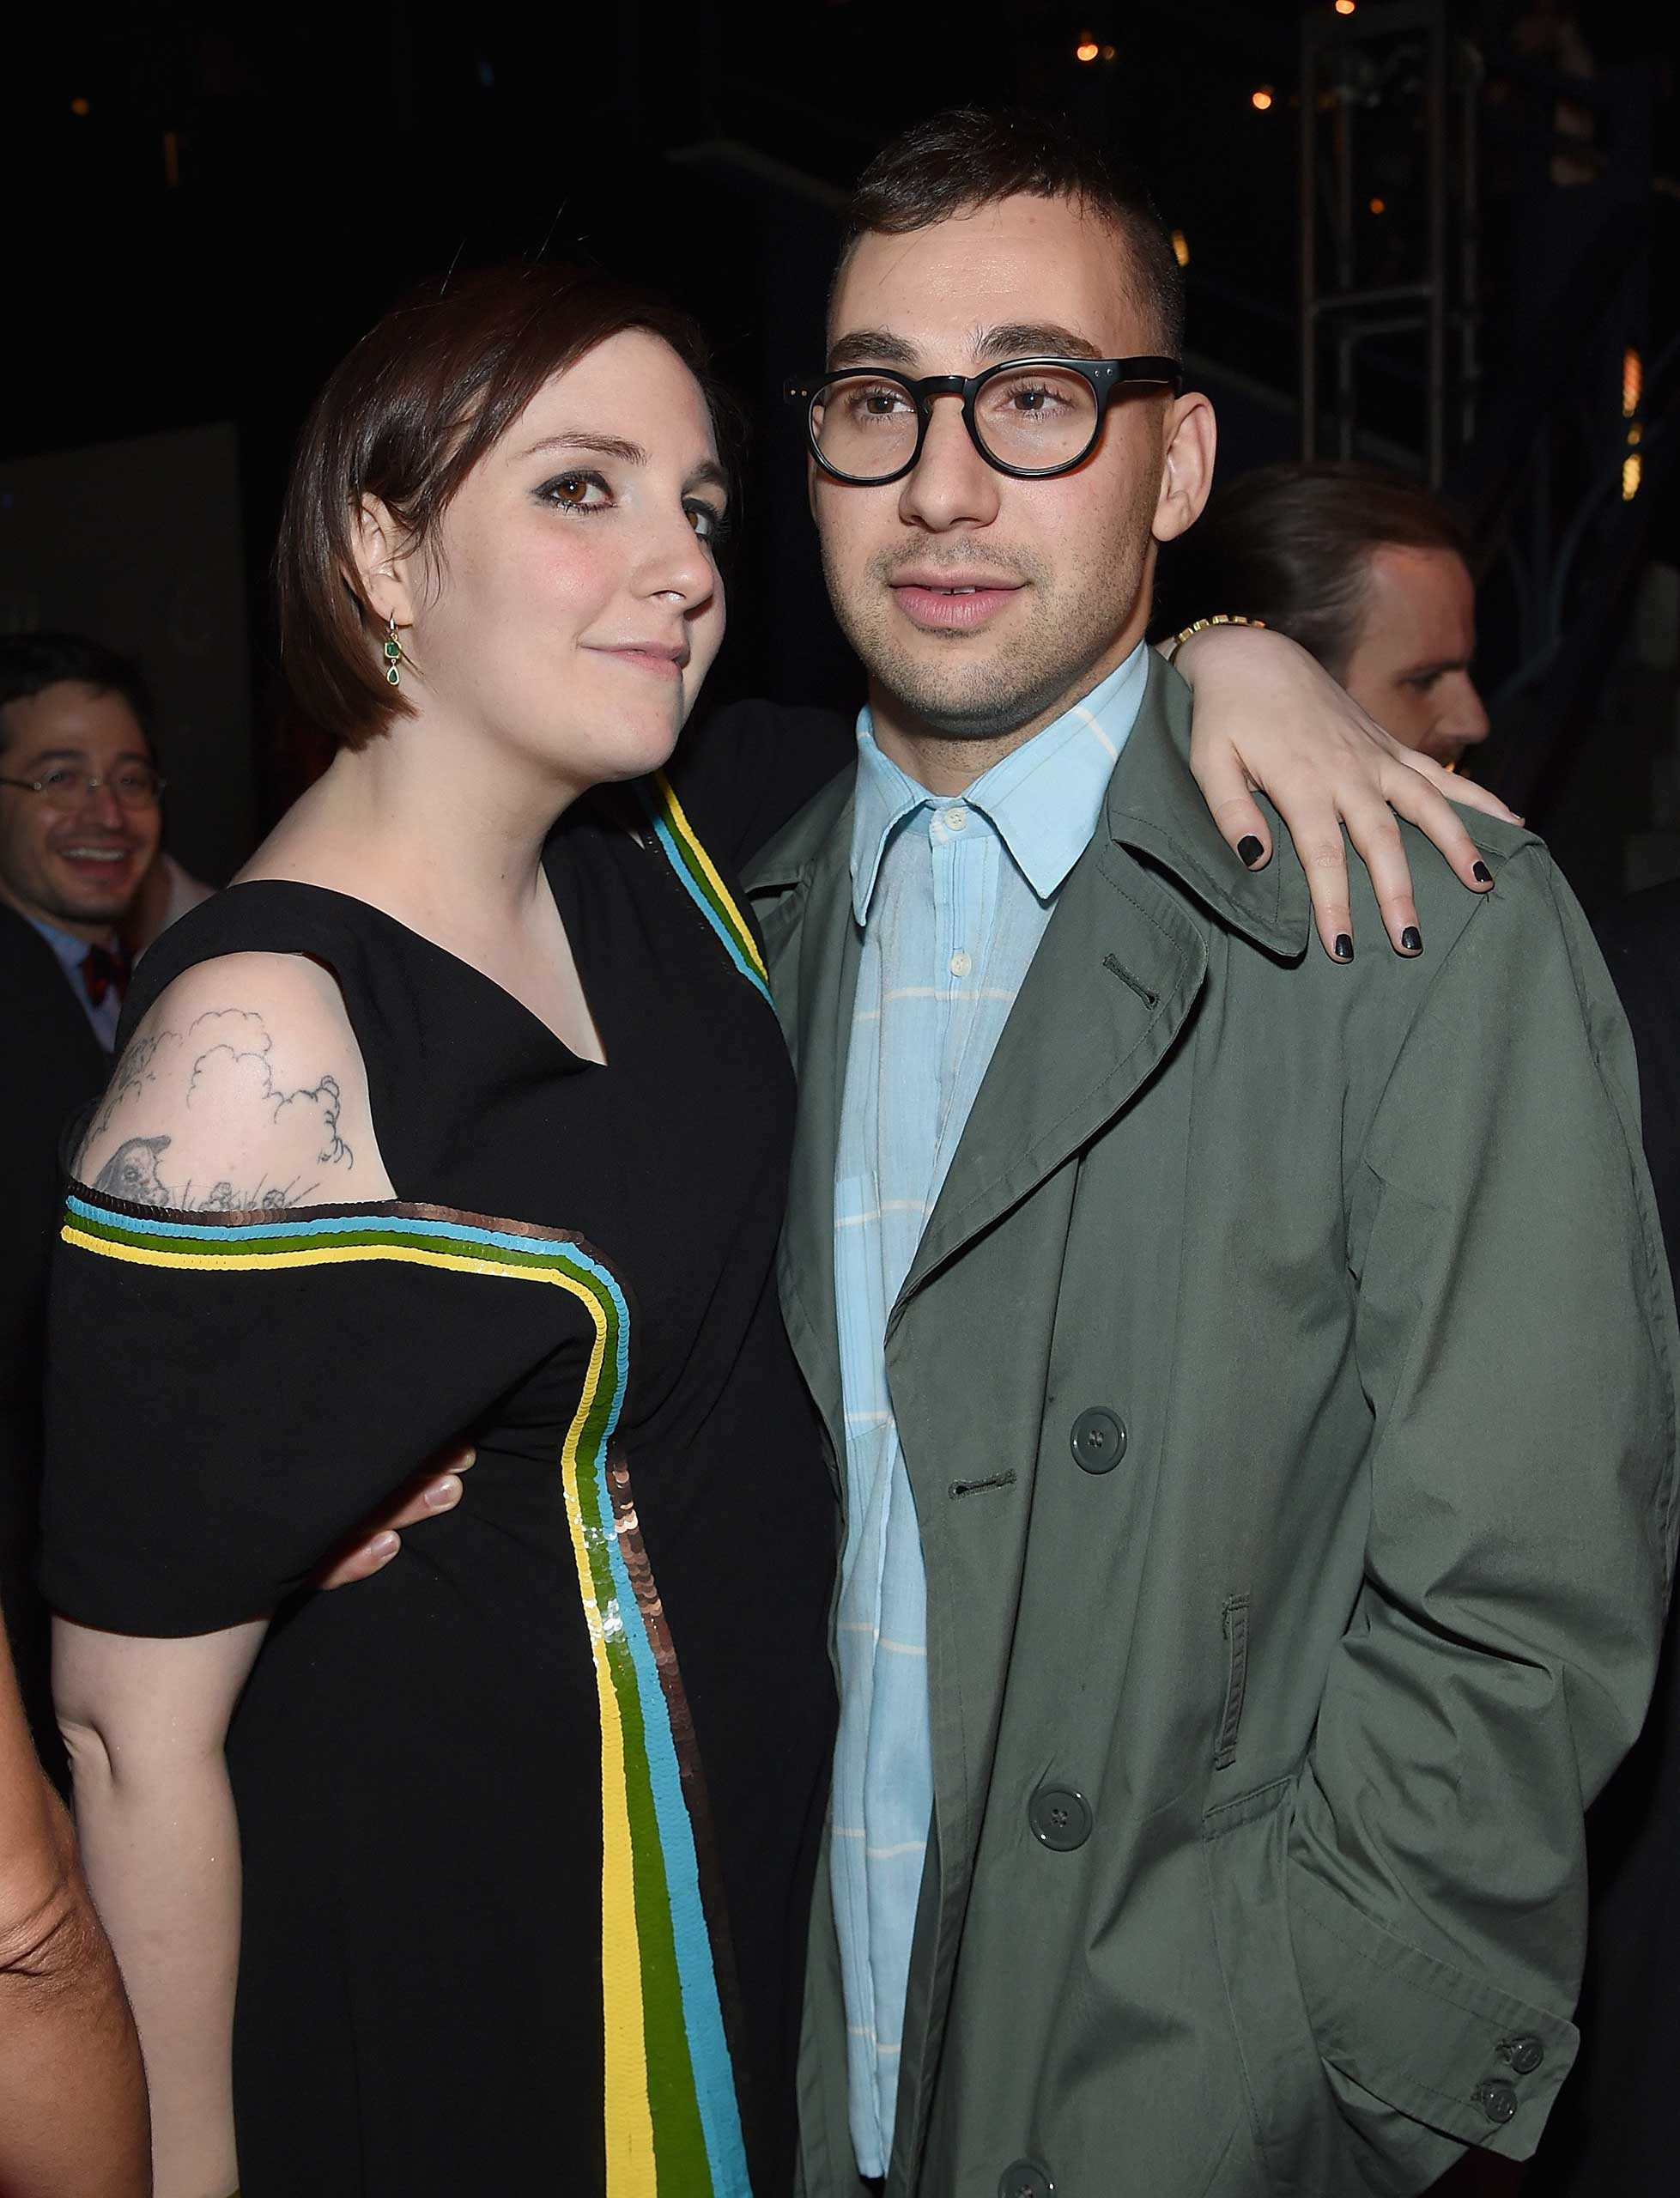 Lena Dunham and Jack Antonoff  attend the  Girls  season four series premiere after party at The Museum of Natural History in New York City on Jan. 5, 2015.